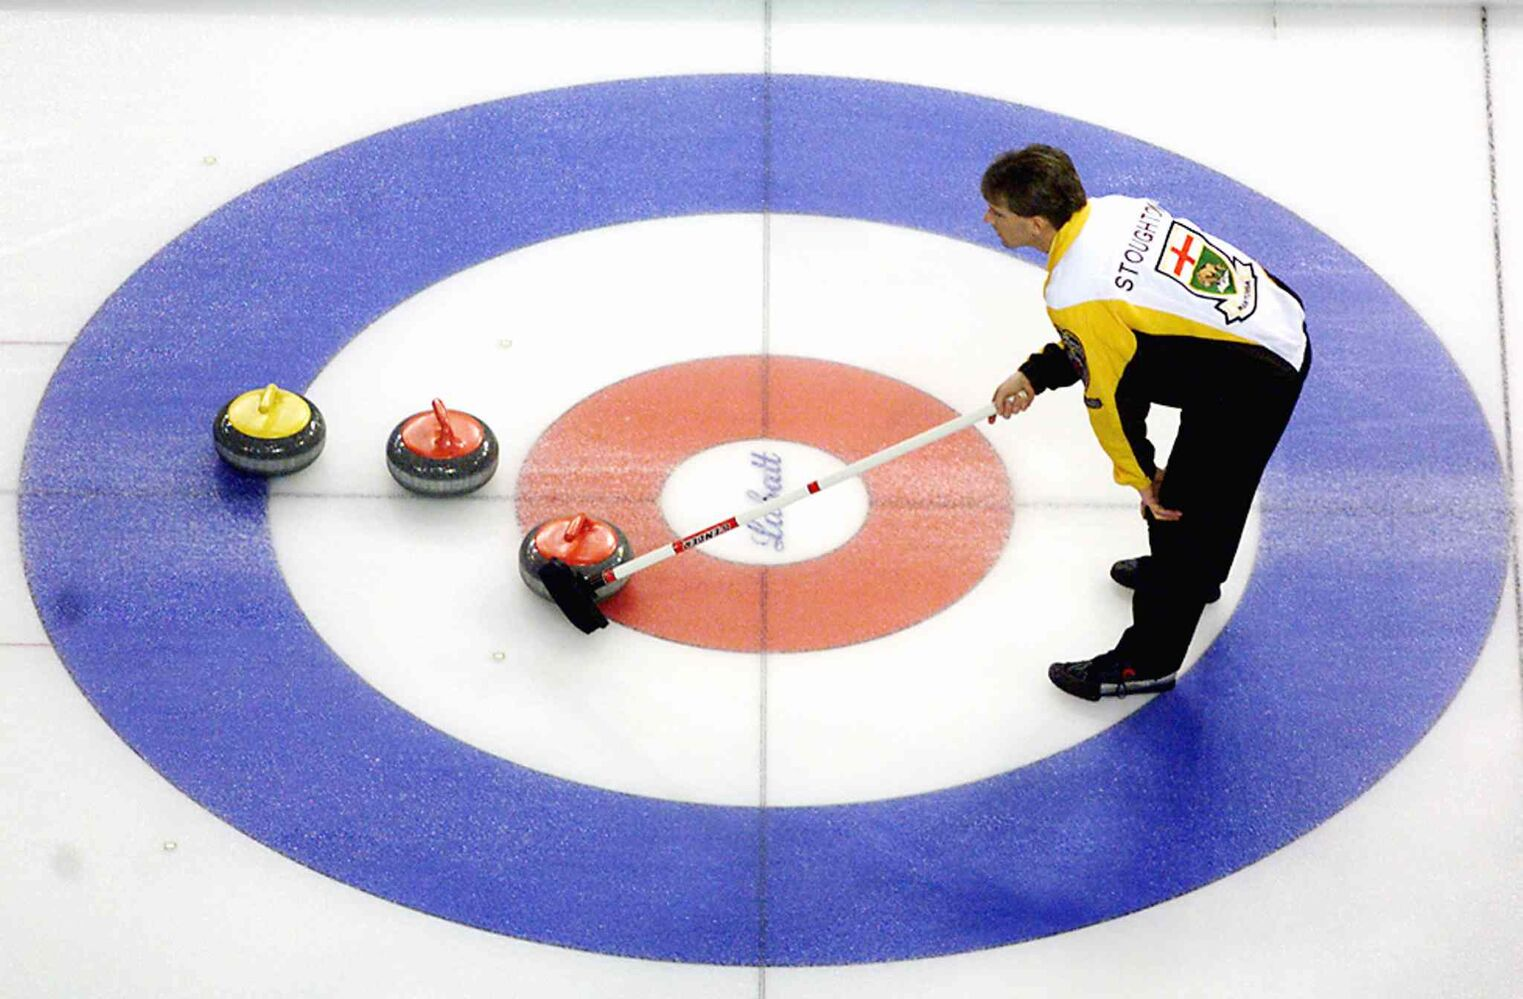 Jeff Stoughton uses his broom to indicate which rock he wants his team to remove during 16th draw of competition against PEI at The Brier in Edmonton in 1999. (Chuck Stoody / The Canadian Press Files)